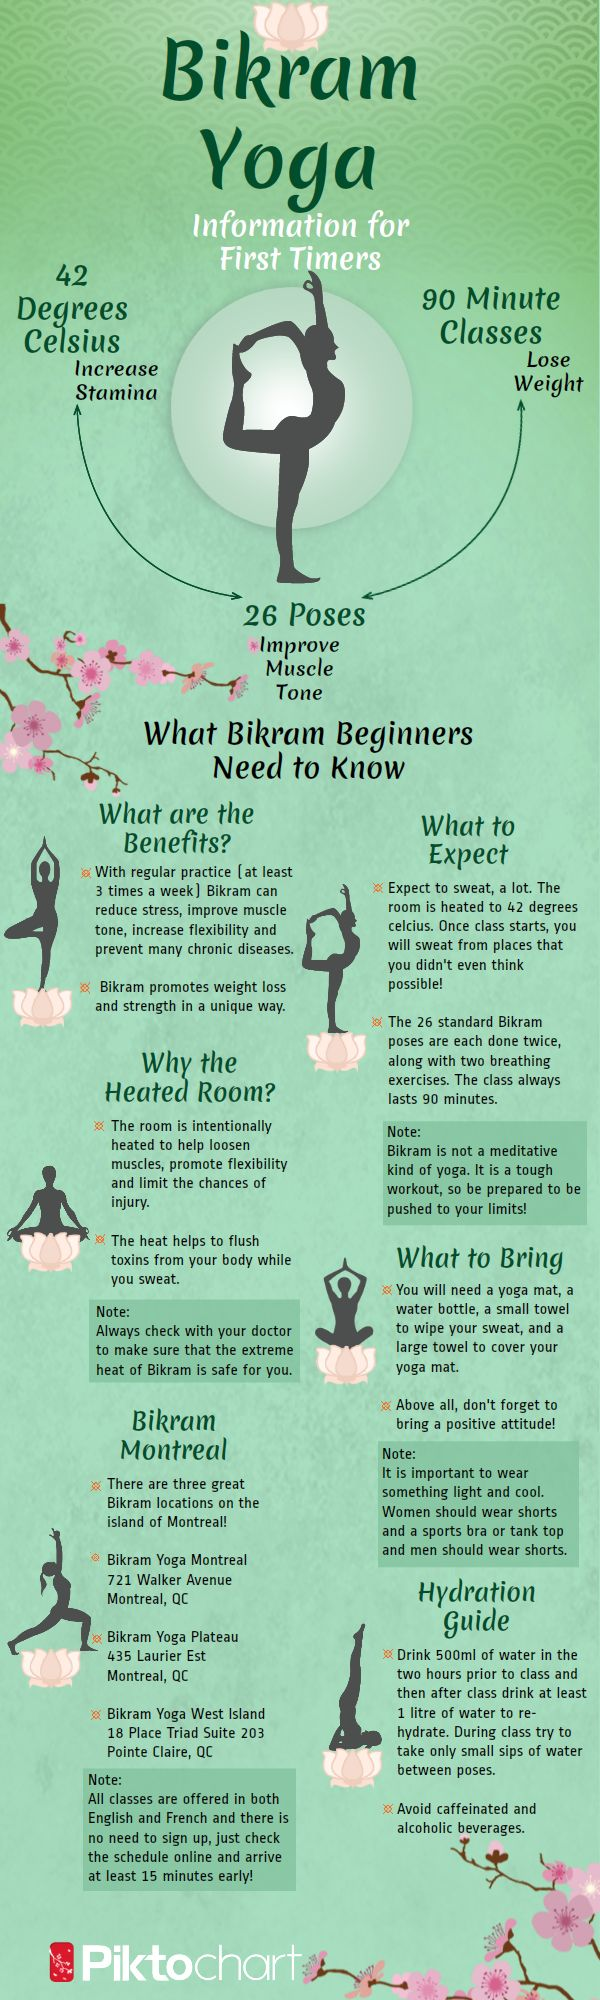 What you need to know about Bikram Yoga: http://wwwbrilliantyoga.blogspot.com/ #findyouryoga #travel #yoga www.yogatraveltree.com